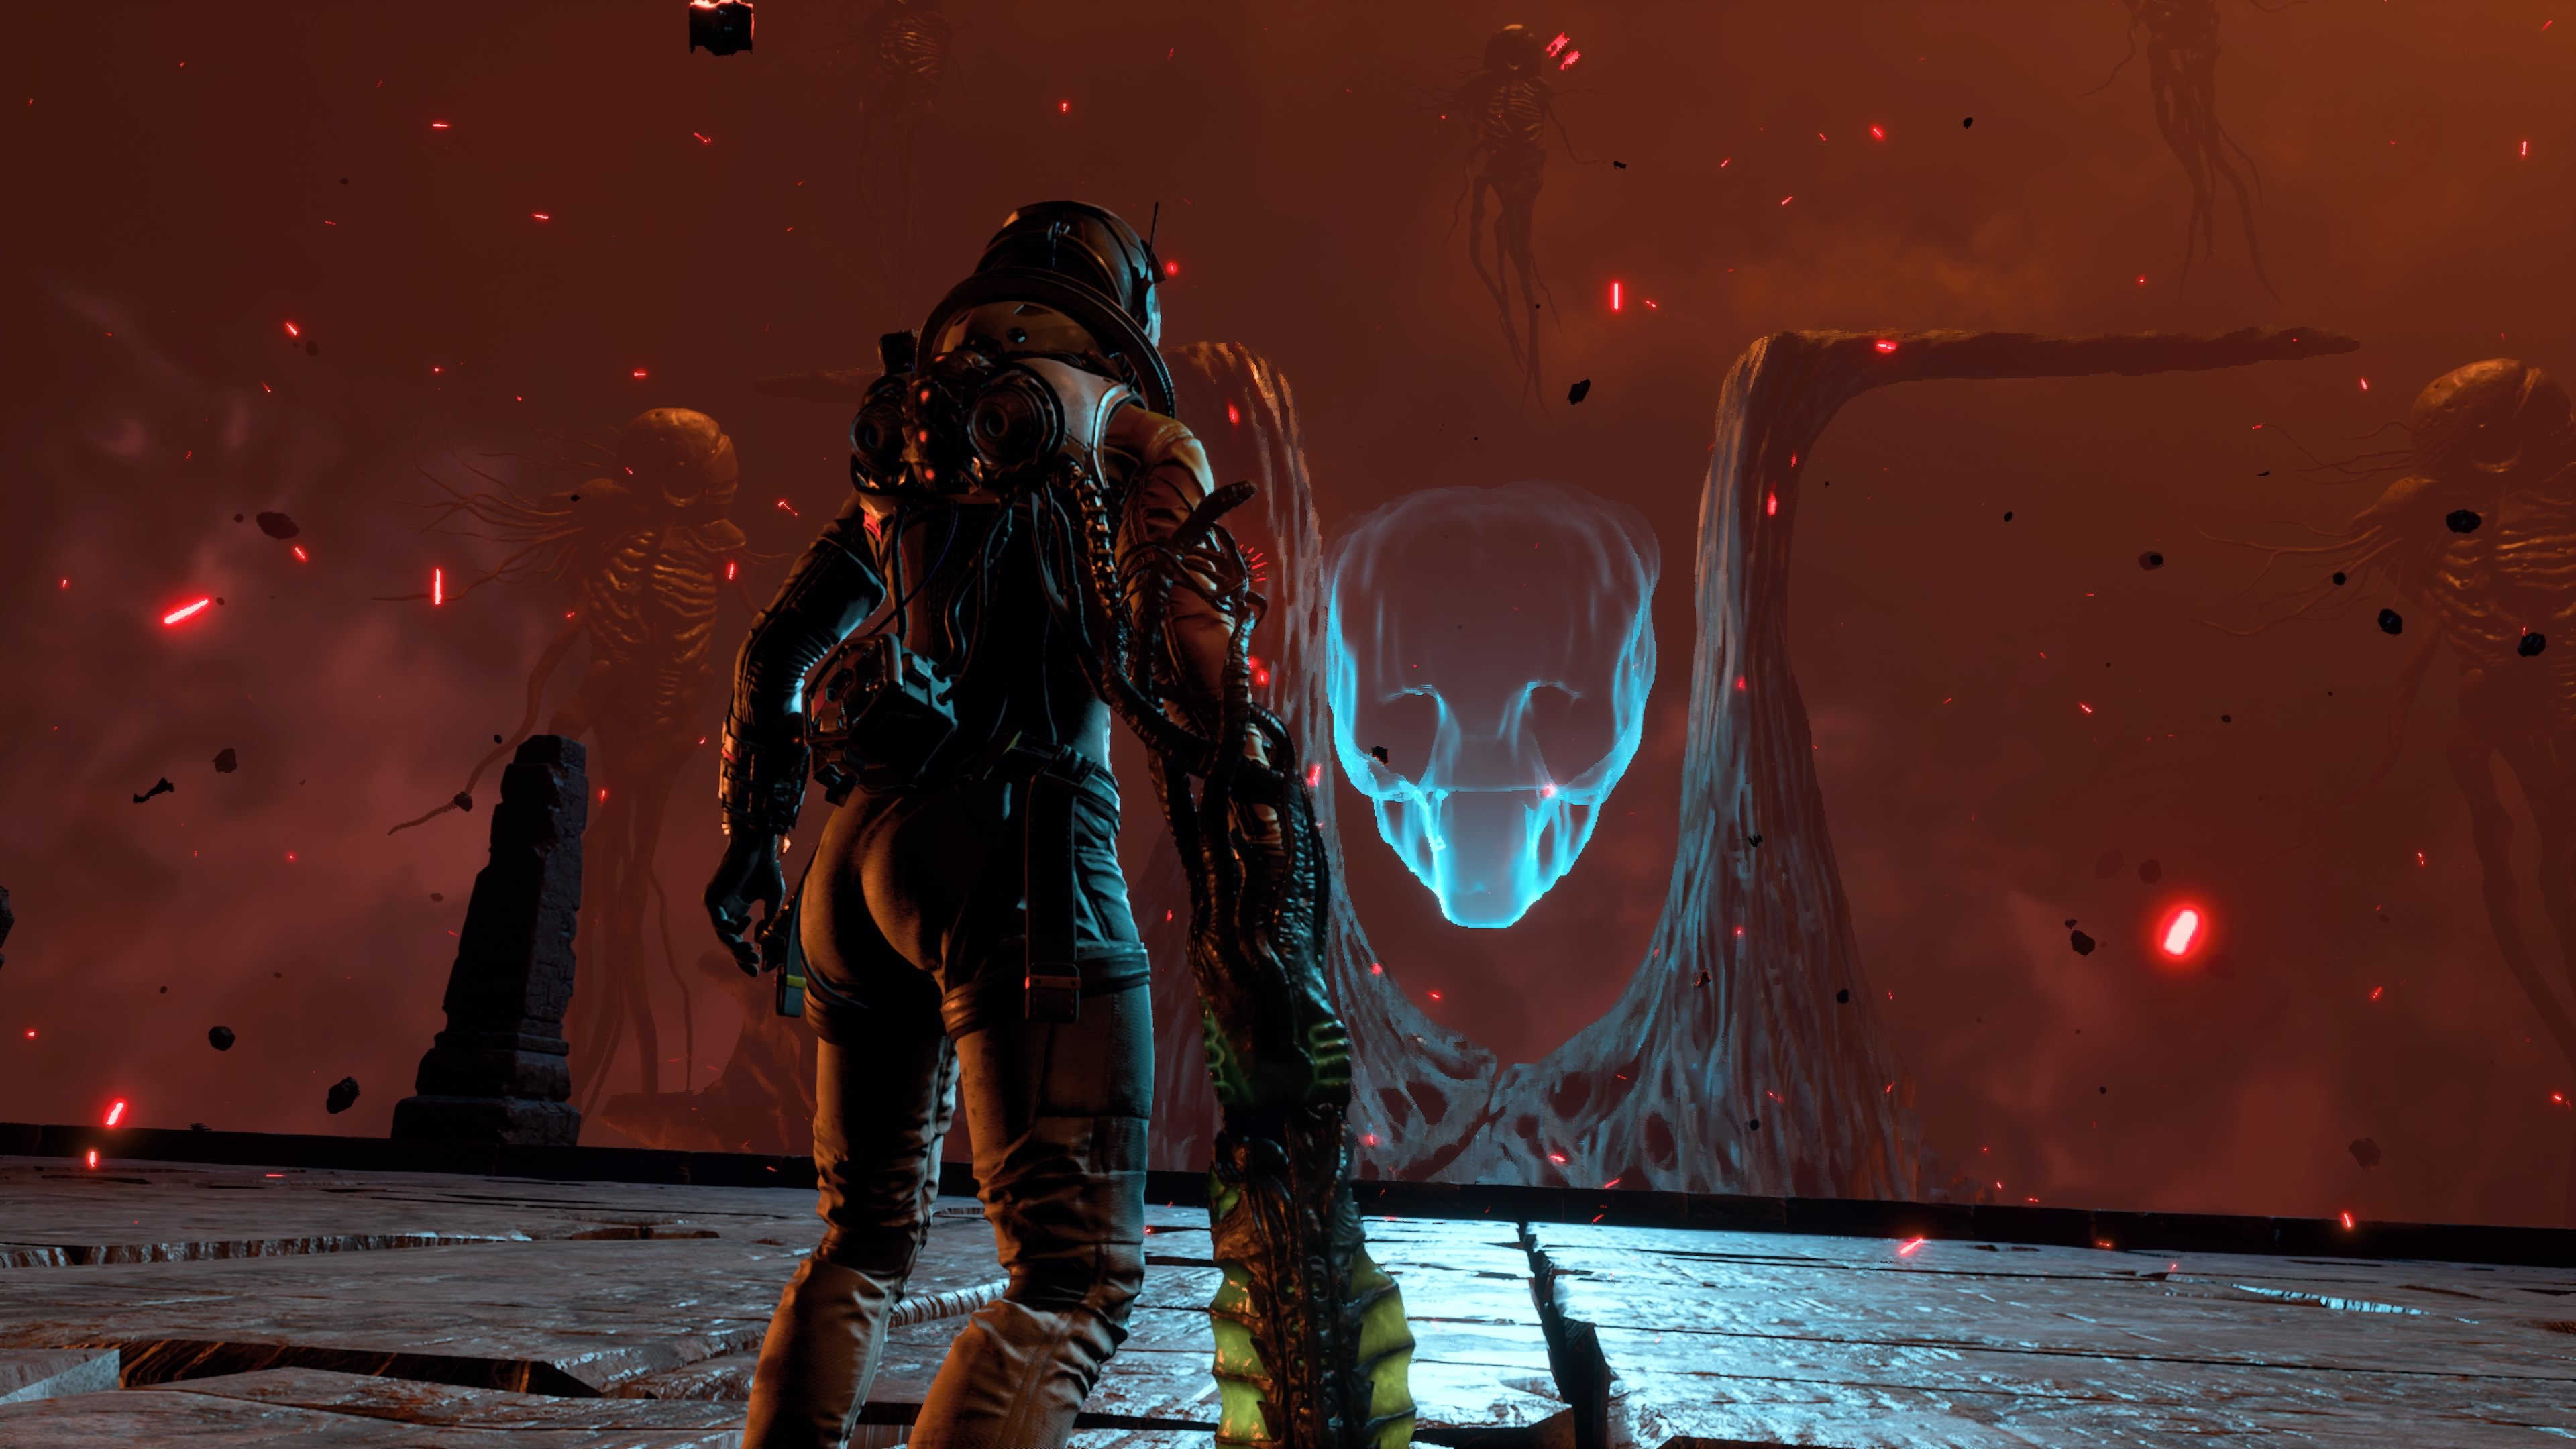 Selene stands in front of a ghostly enemy in Returnal